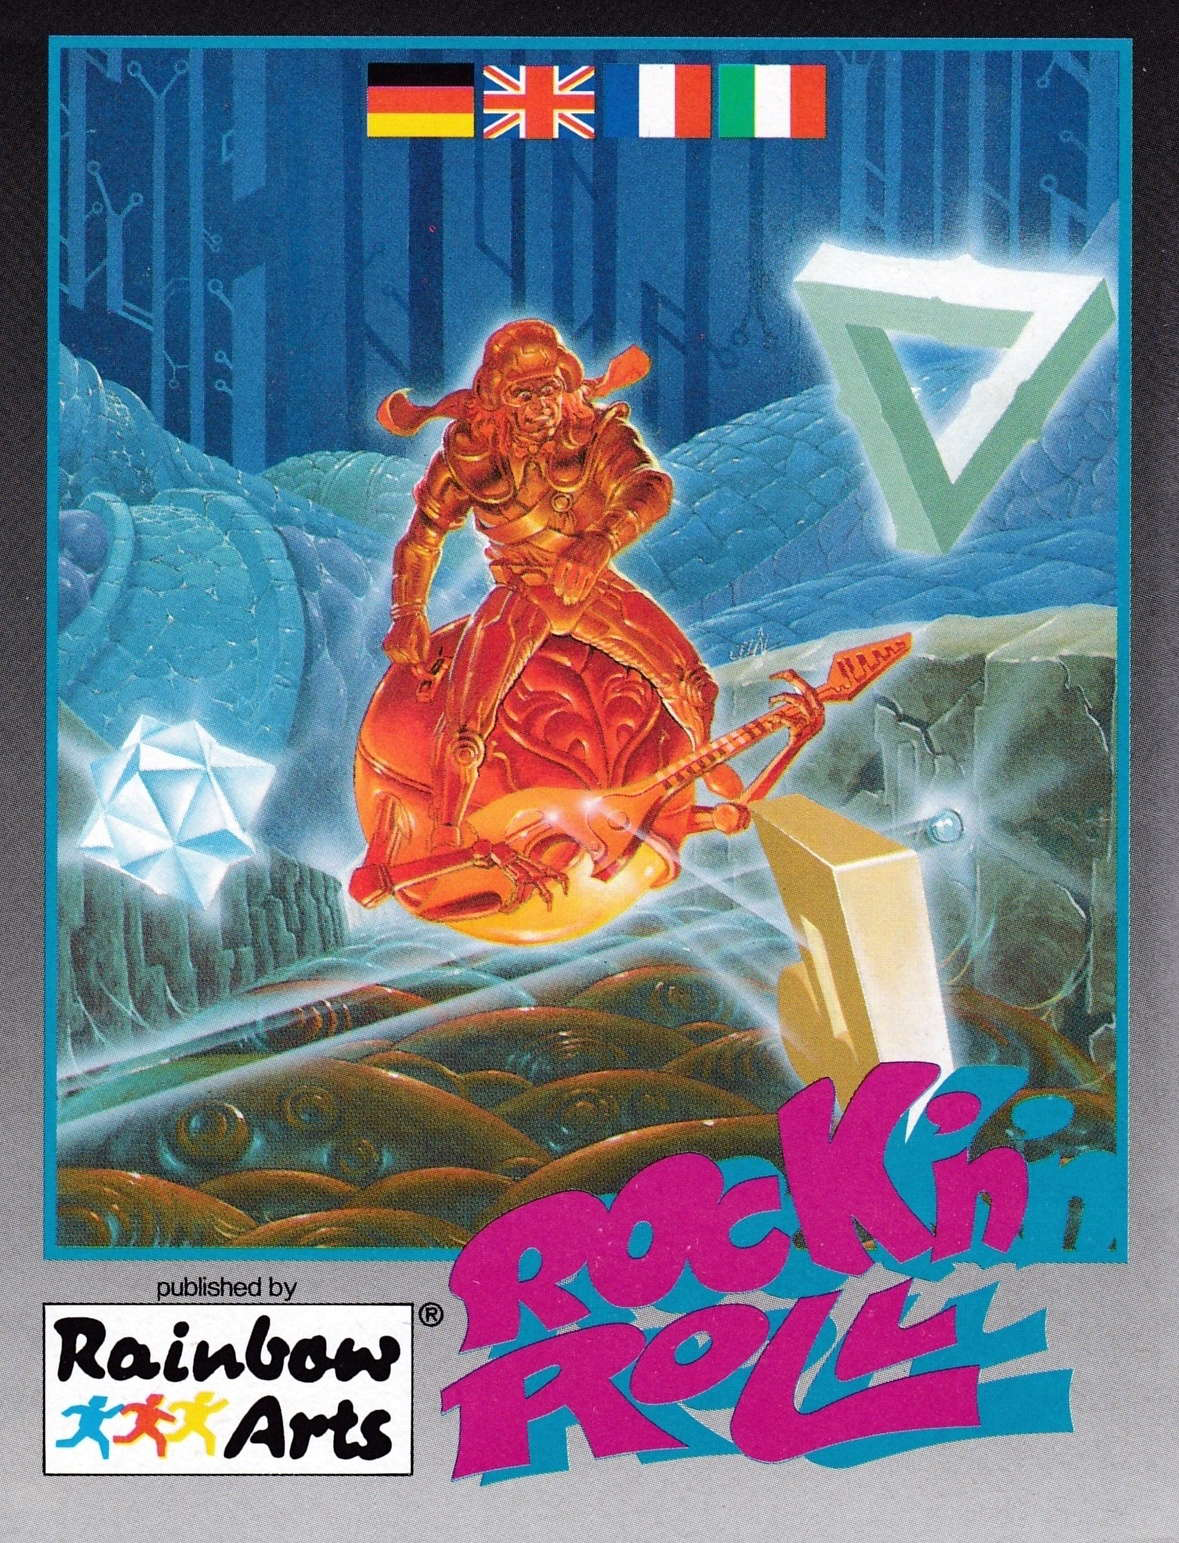 cover of the Amstrad CPC game Rock 'n Roll  by GameBase CPC